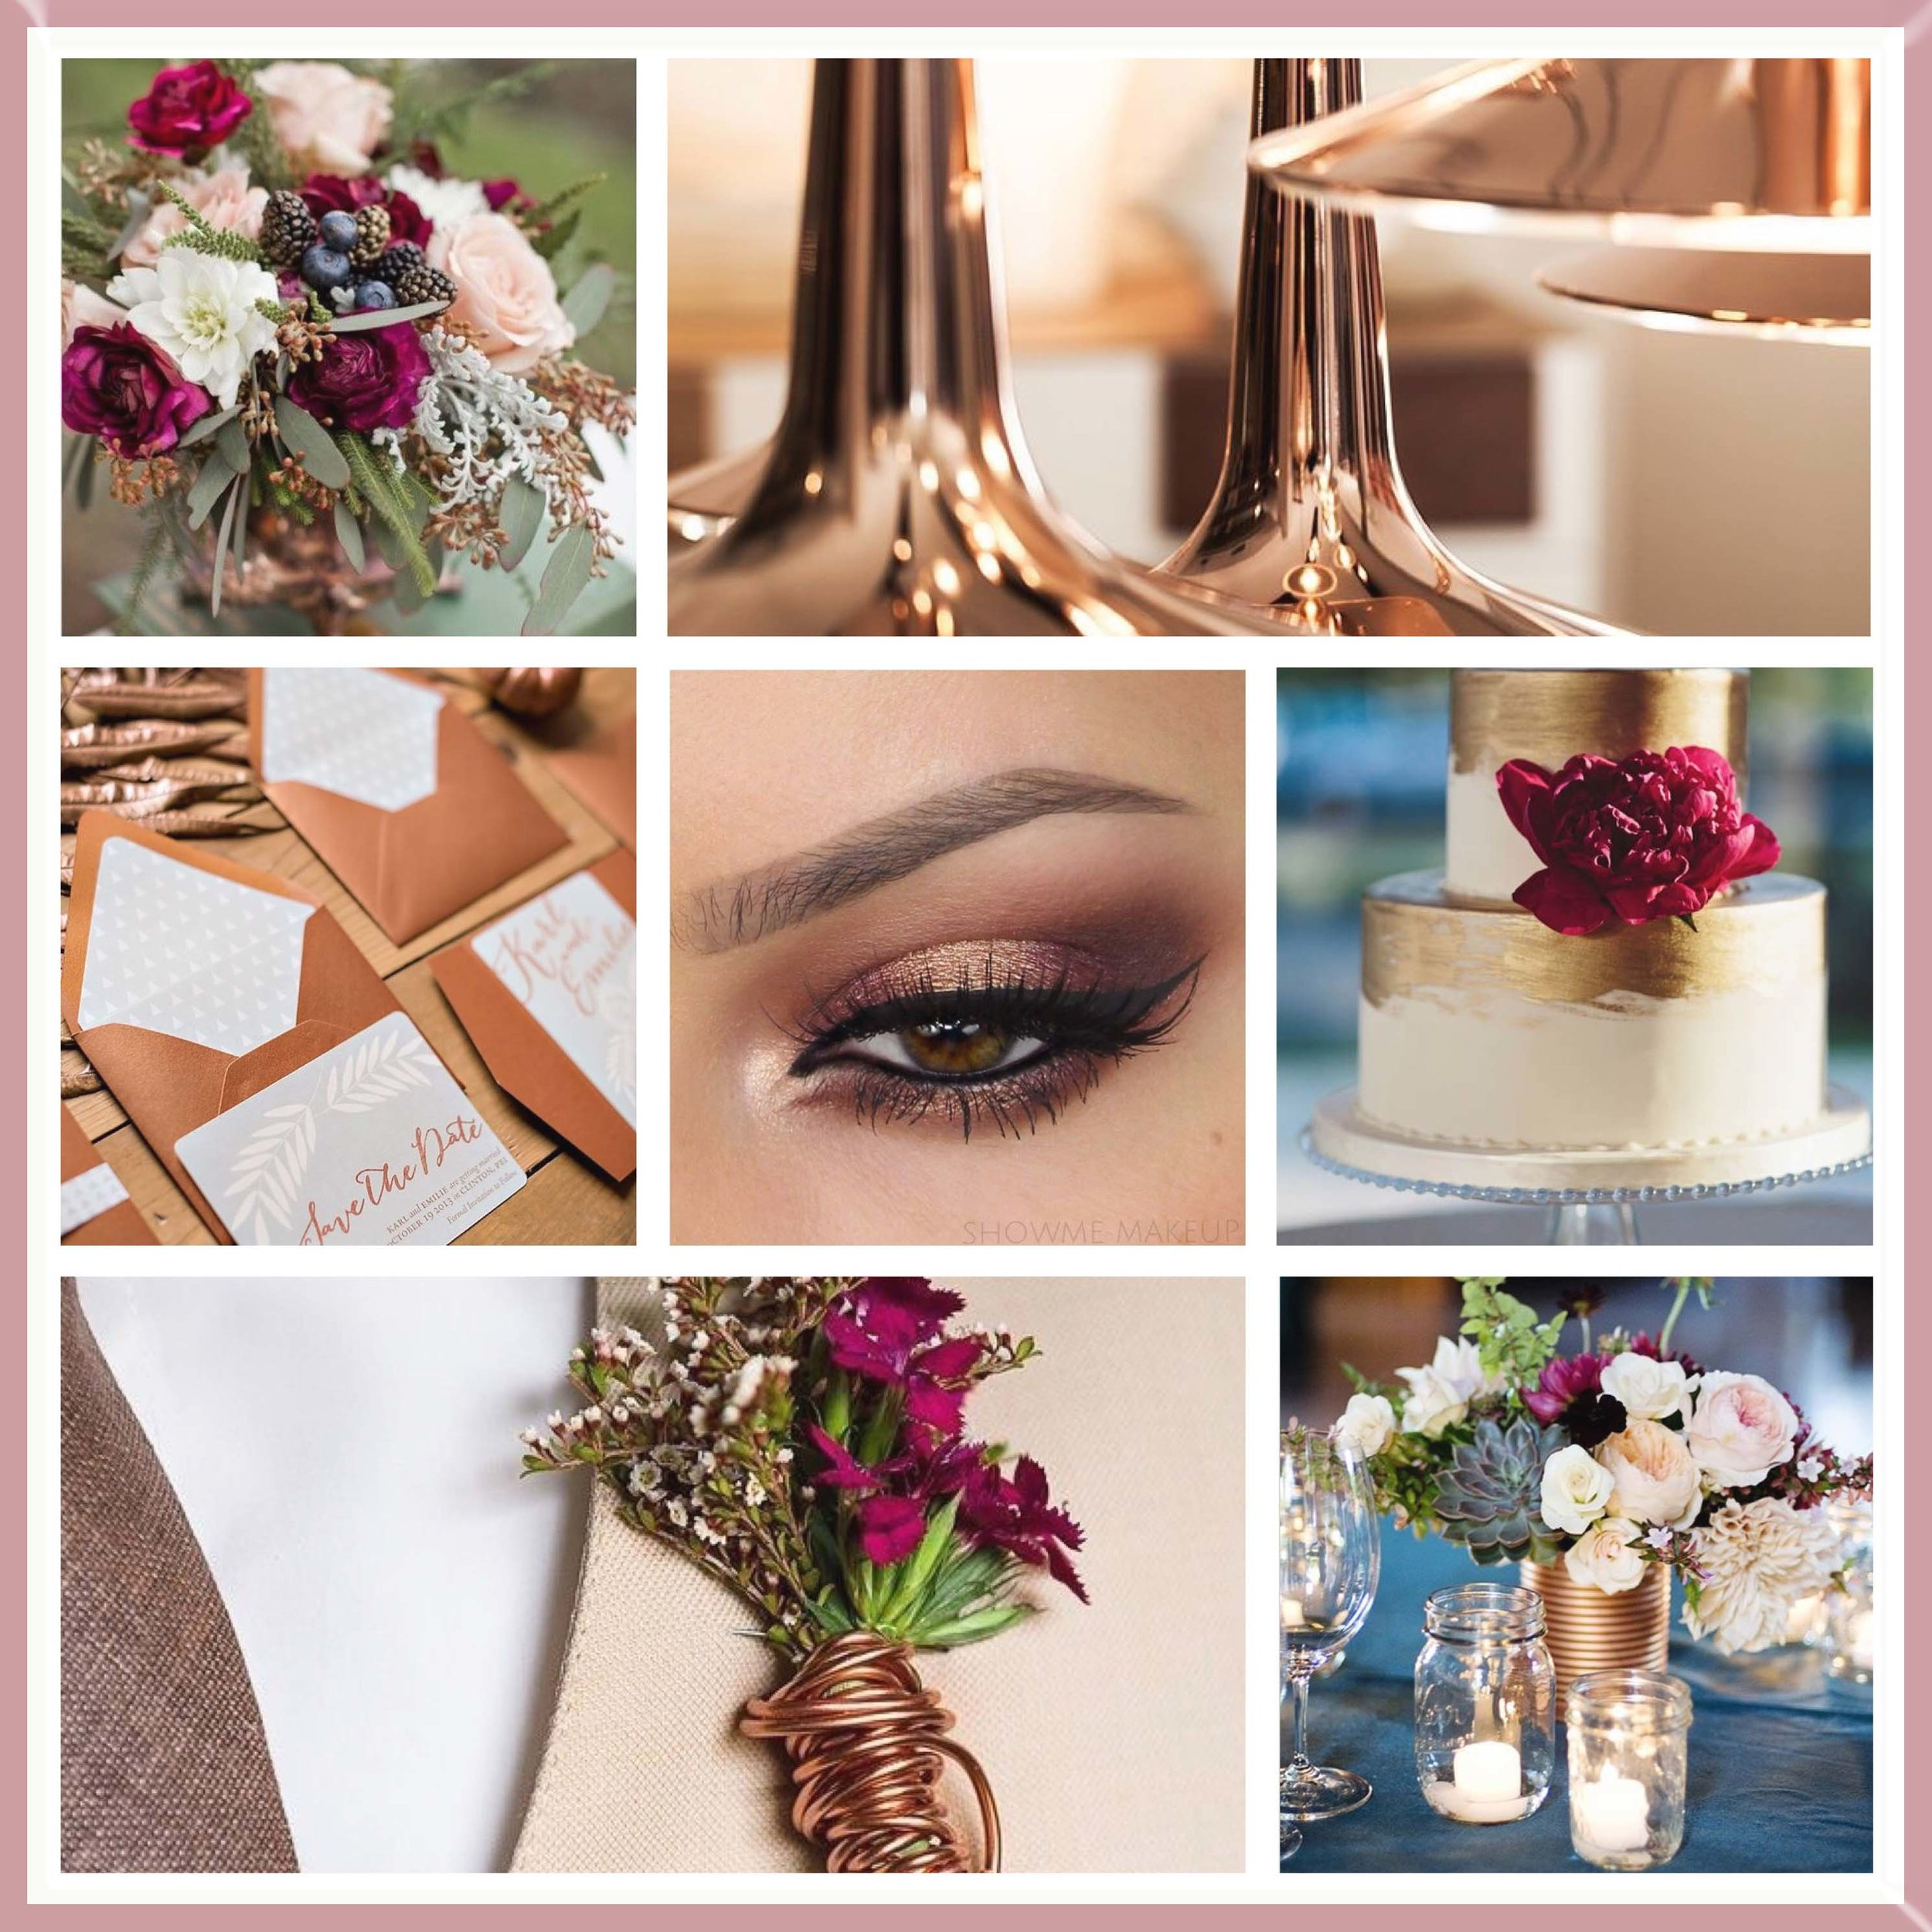 Burgundy and Rose Gold mood board designed by Luxe by Minihaha & co.